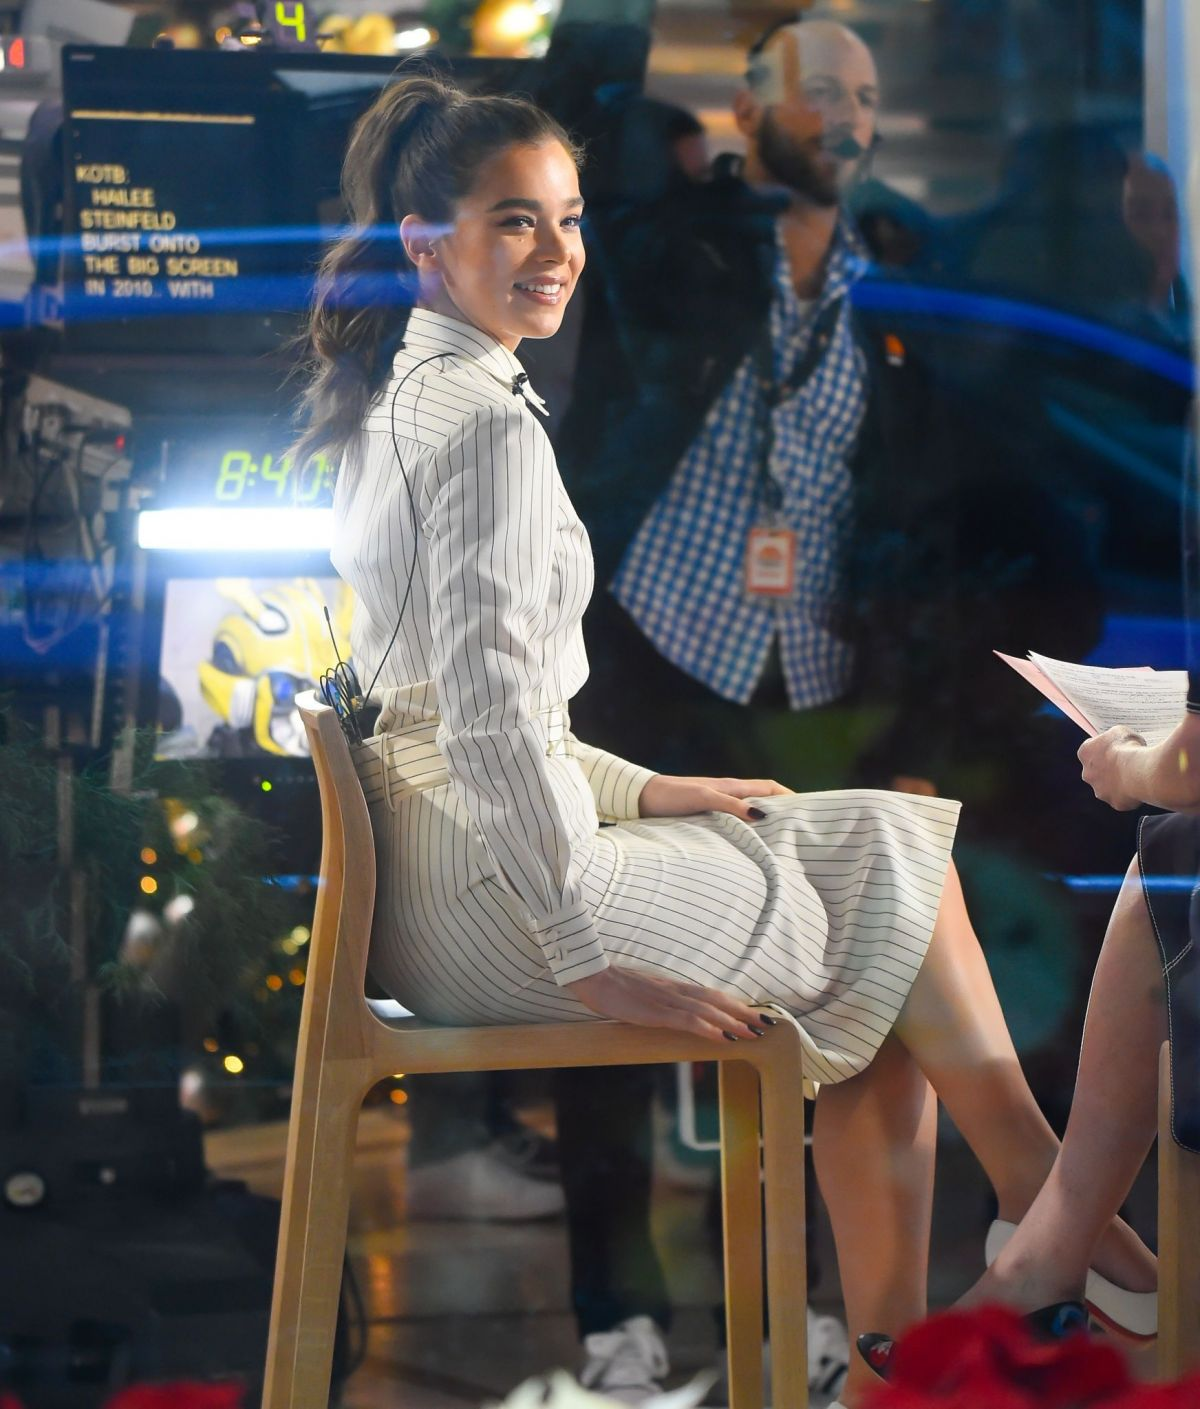 Hailee Steinfeld On set of the 'TODAY' show in New York City